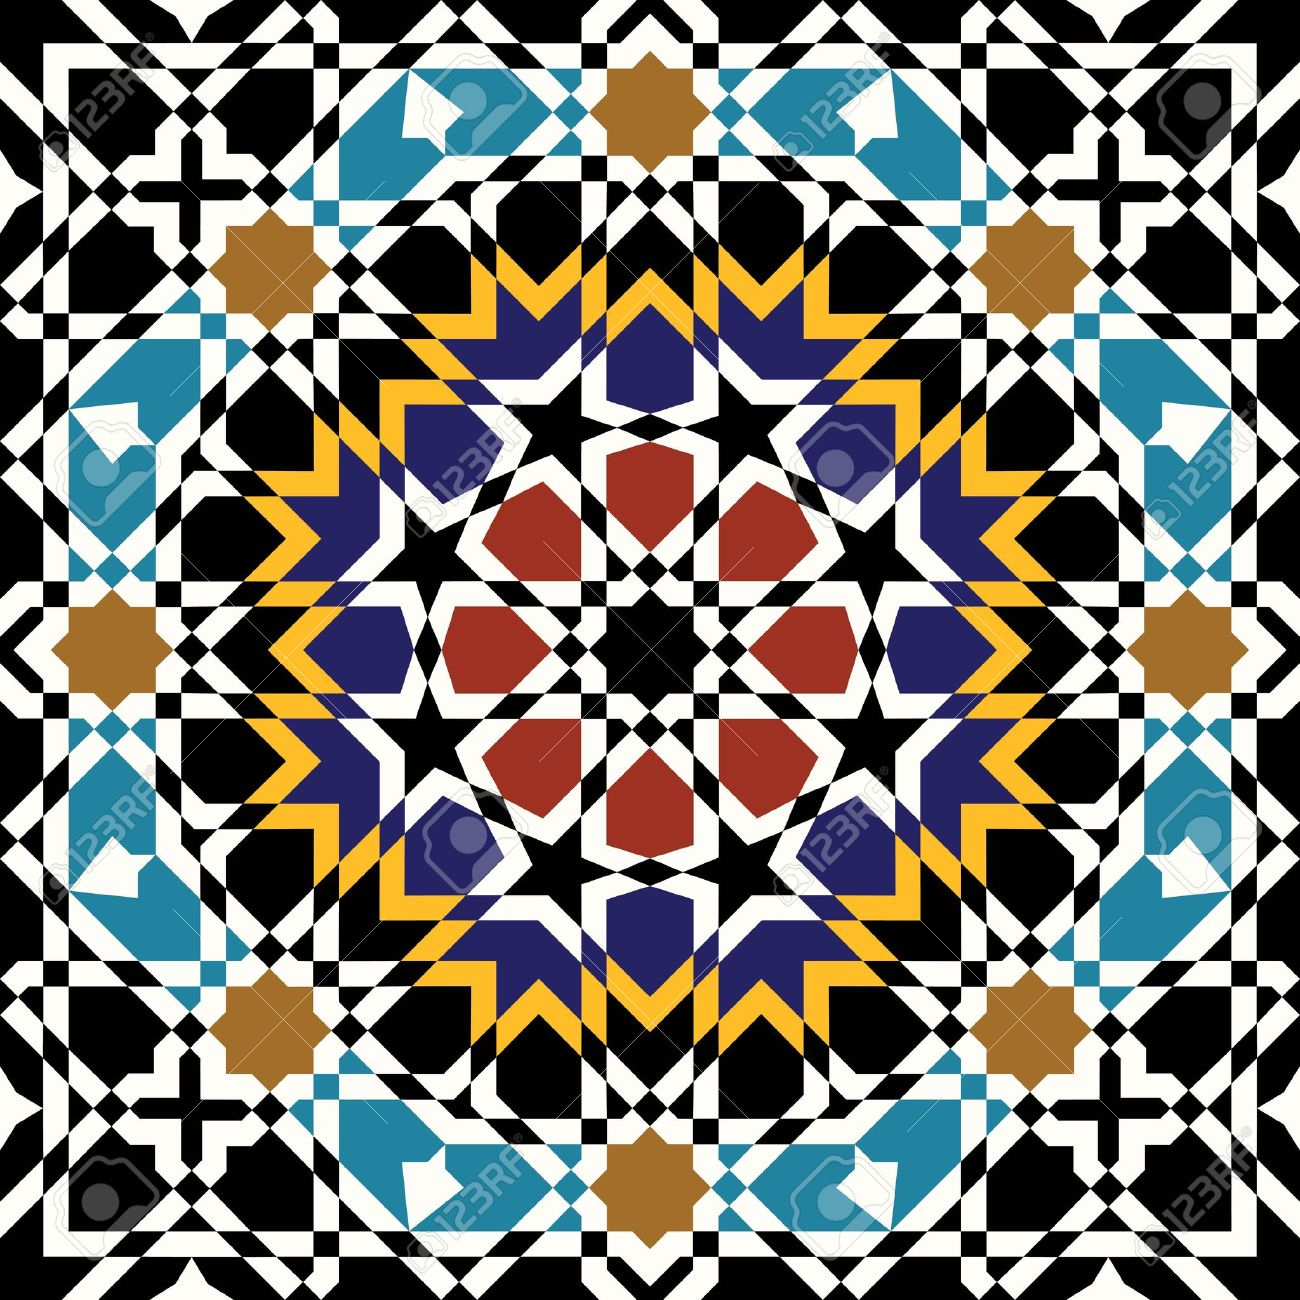 Moroccan patterns clipart image transparent download Moroccan patterns clipart - ClipartFest image transparent download